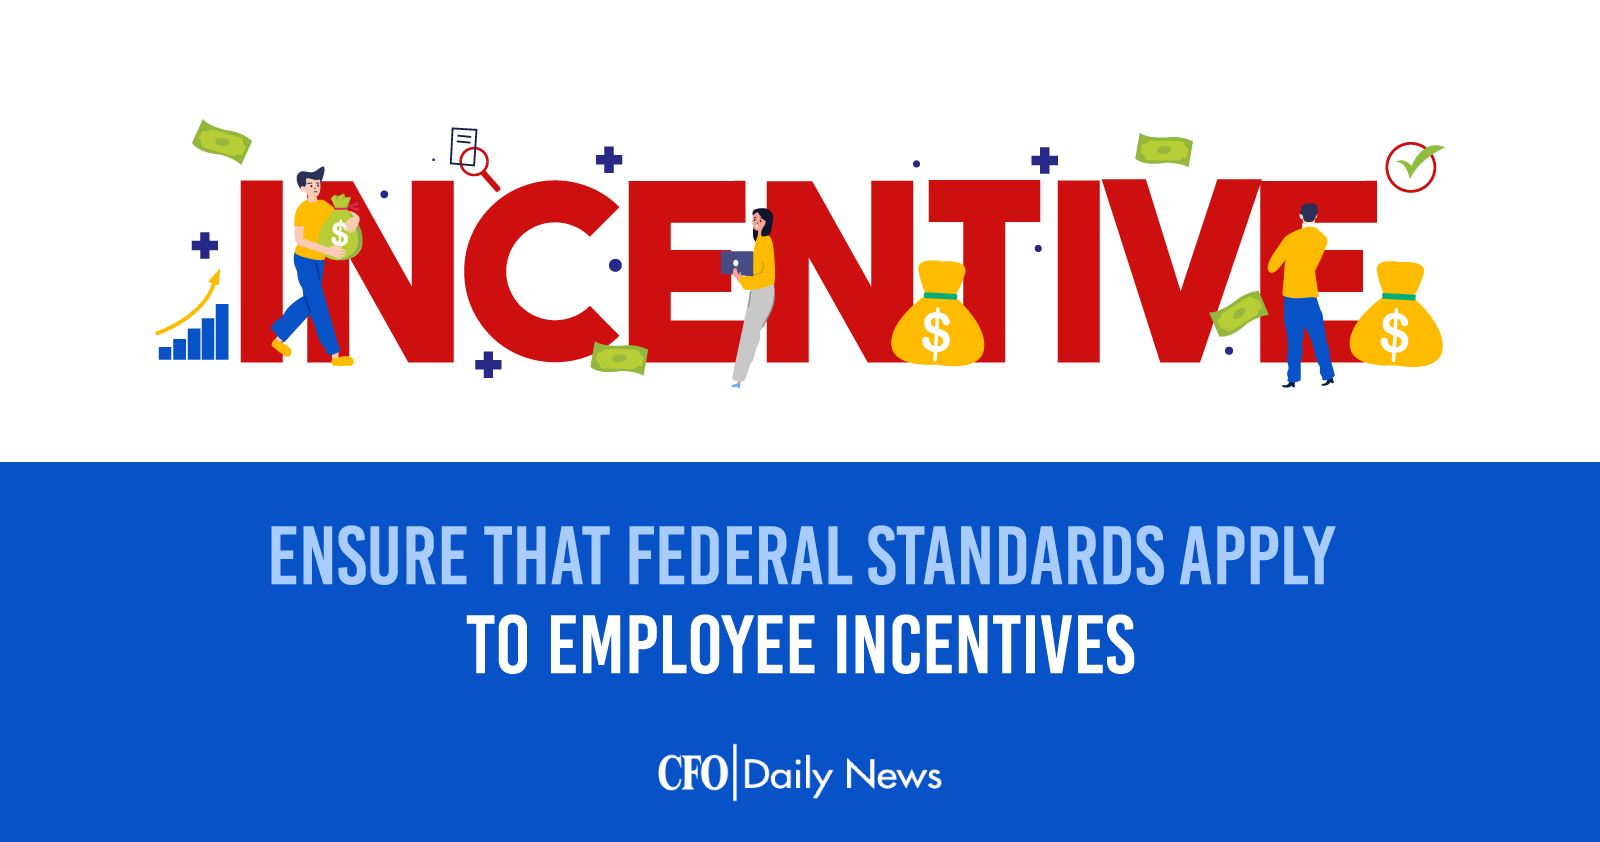 ensure that federal standards apply to employee incentives